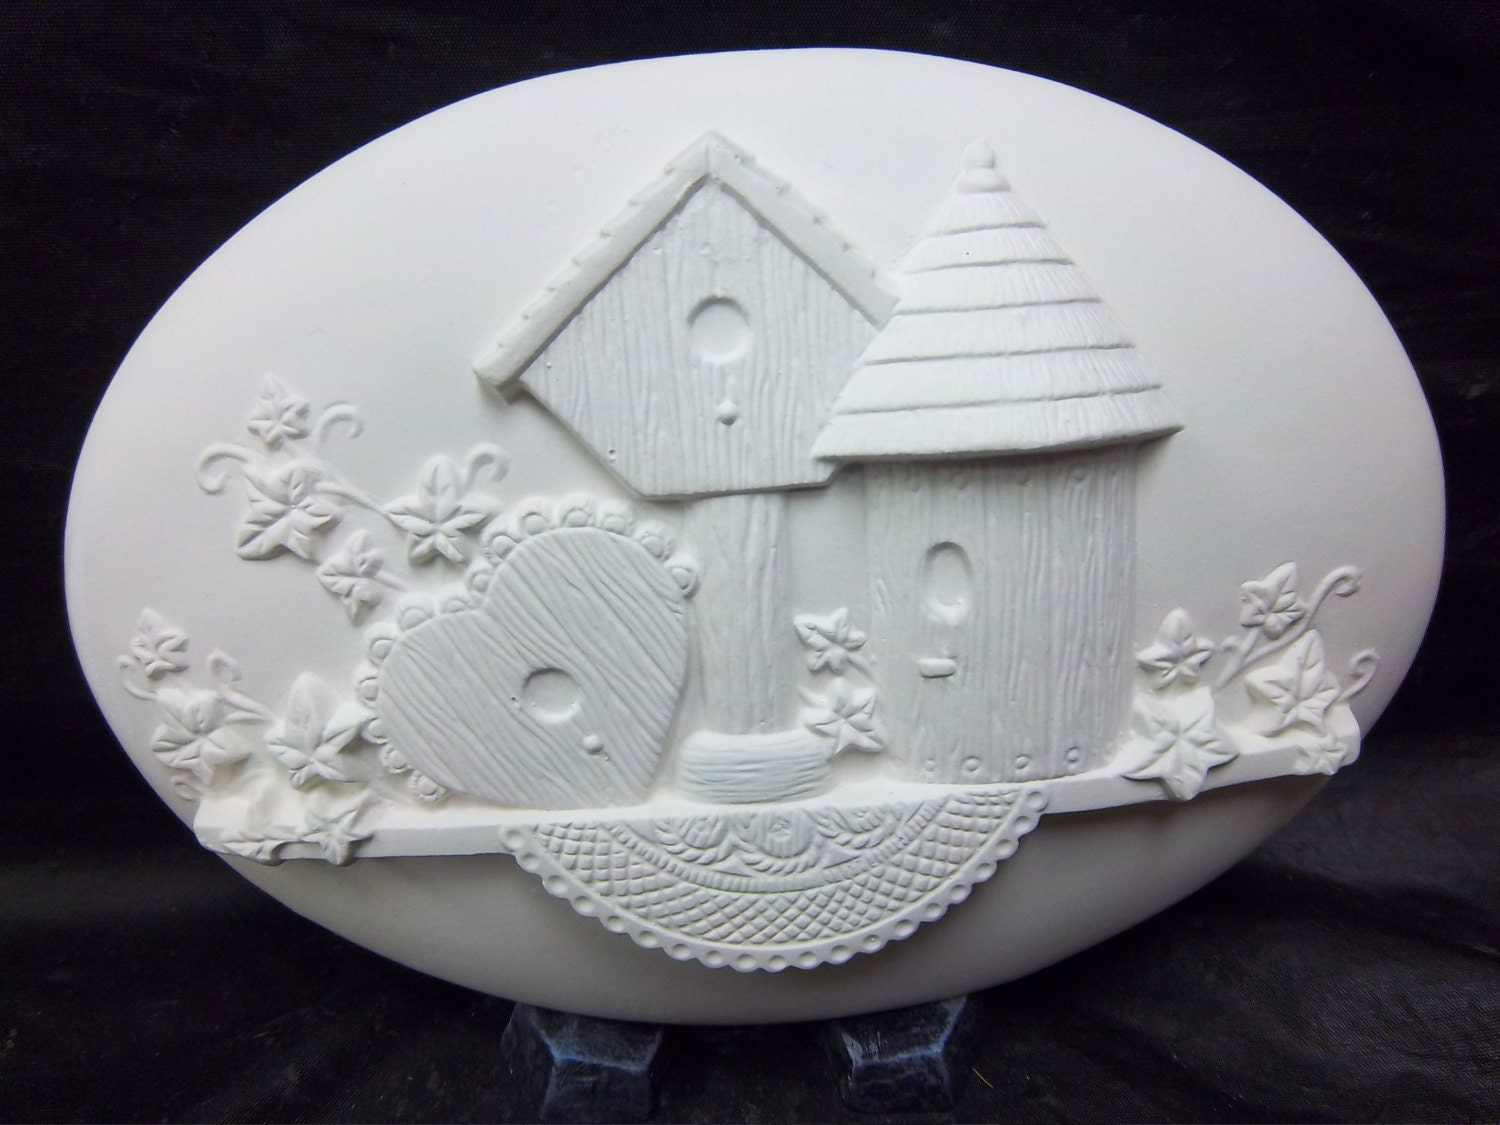 Birdhouse Insert D 1608 U Paint Ceramic Bisque For Welcome